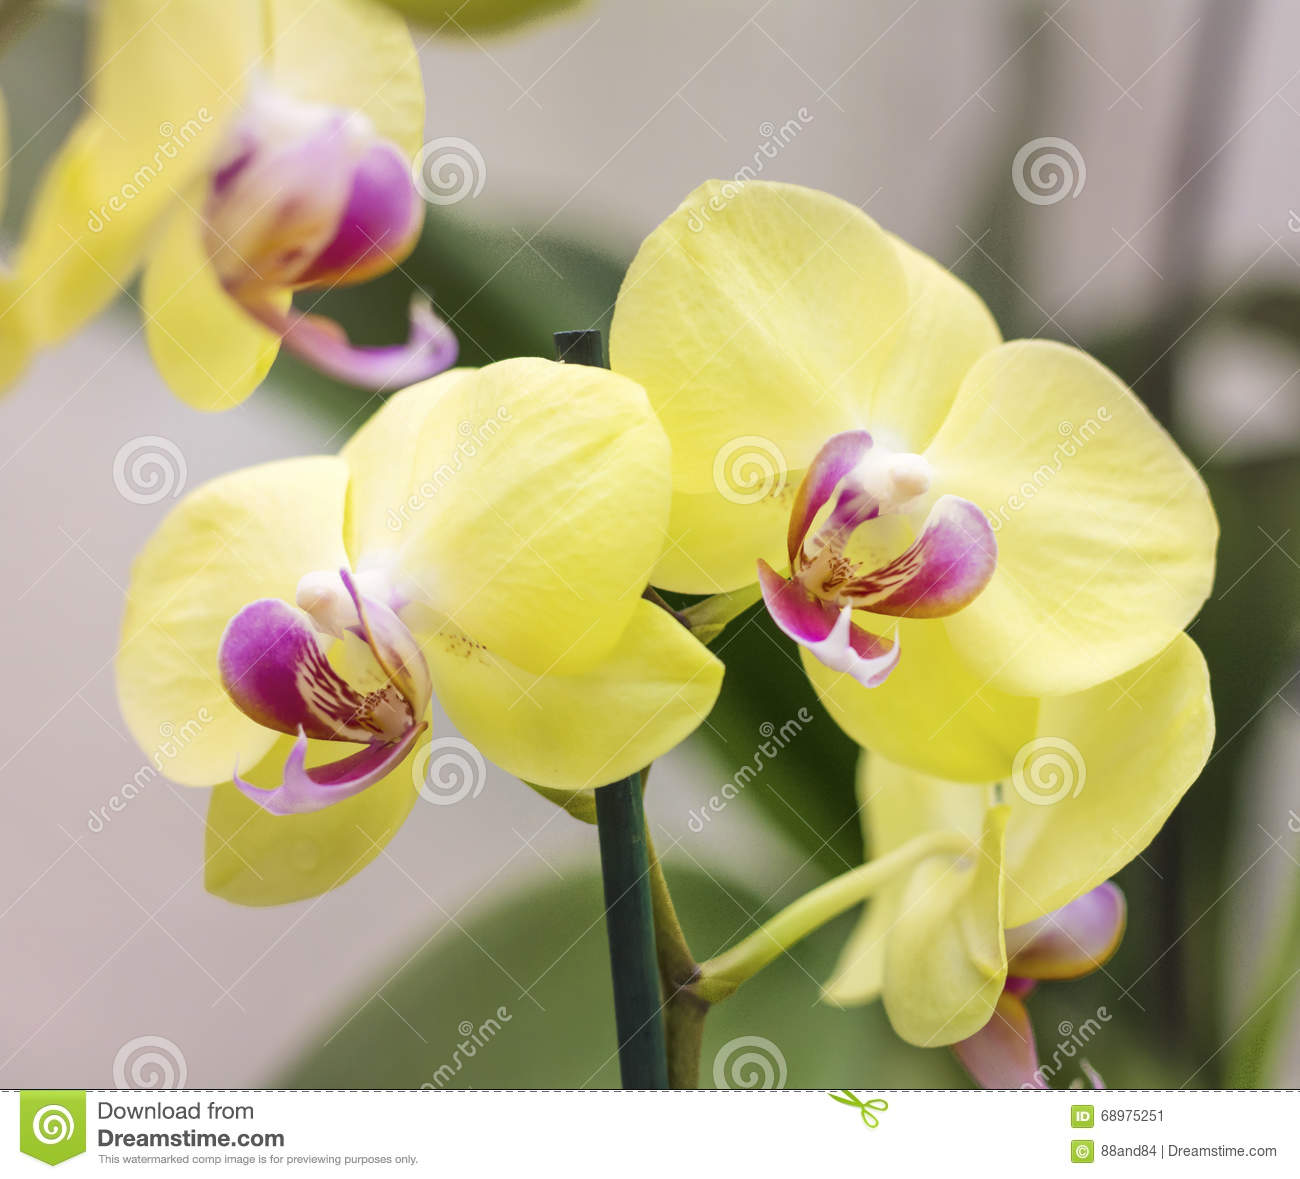 Beautiful blooming yellow orchid flowers